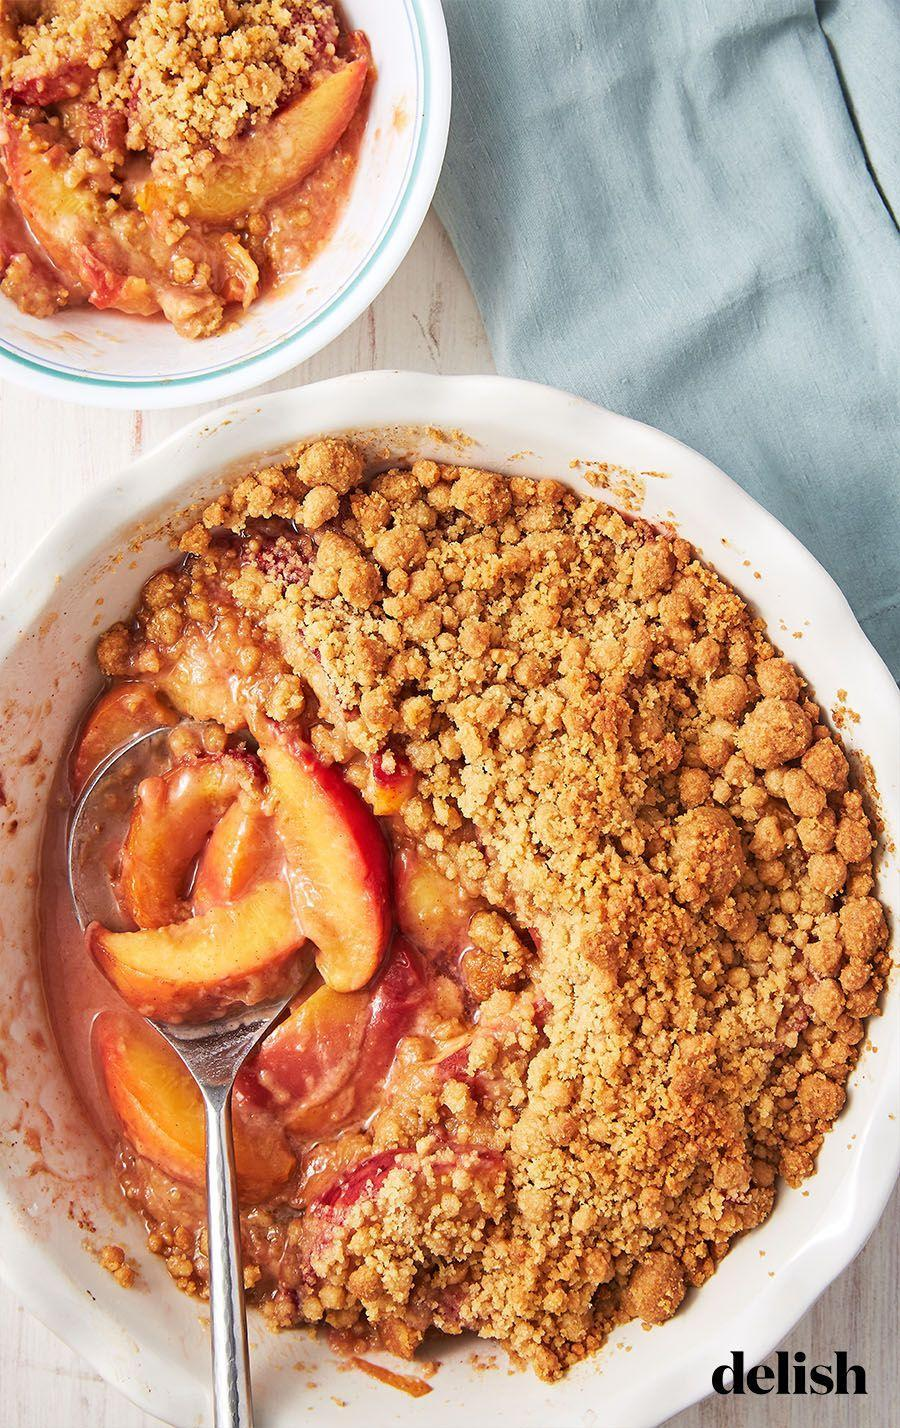 """<p>You'll want it every. single. night. </p><p>Get the recipe from <a href=""""https://www.delish.com/cooking/recipe-ideas/a28091638/peach-crumble-recipe/"""" rel=""""nofollow noopener"""" target=""""_blank"""" data-ylk=""""slk:Delish"""" class=""""link rapid-noclick-resp"""">Delish</a>.</p>"""